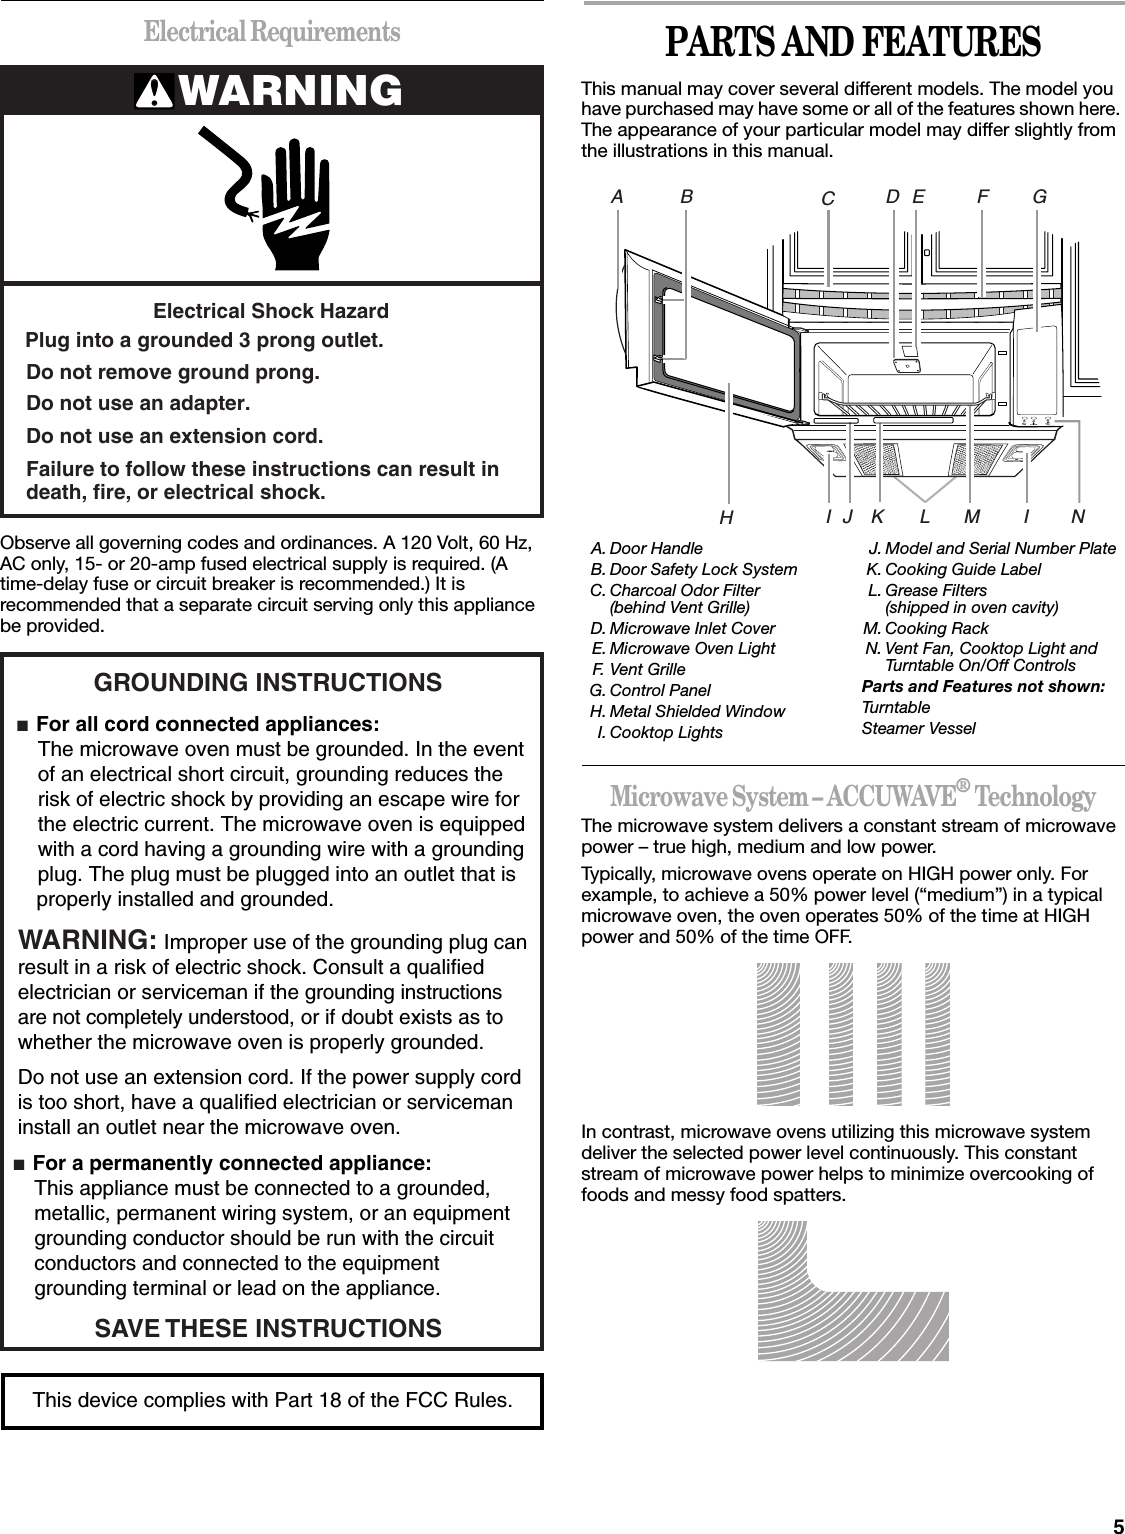 Whirlpool Microwave Development Gh5176 Oven User Manual Circuit 5electrical Requirementsobserve All Governing Codes And Ordinances A 120 Volt 60 Hz Ac